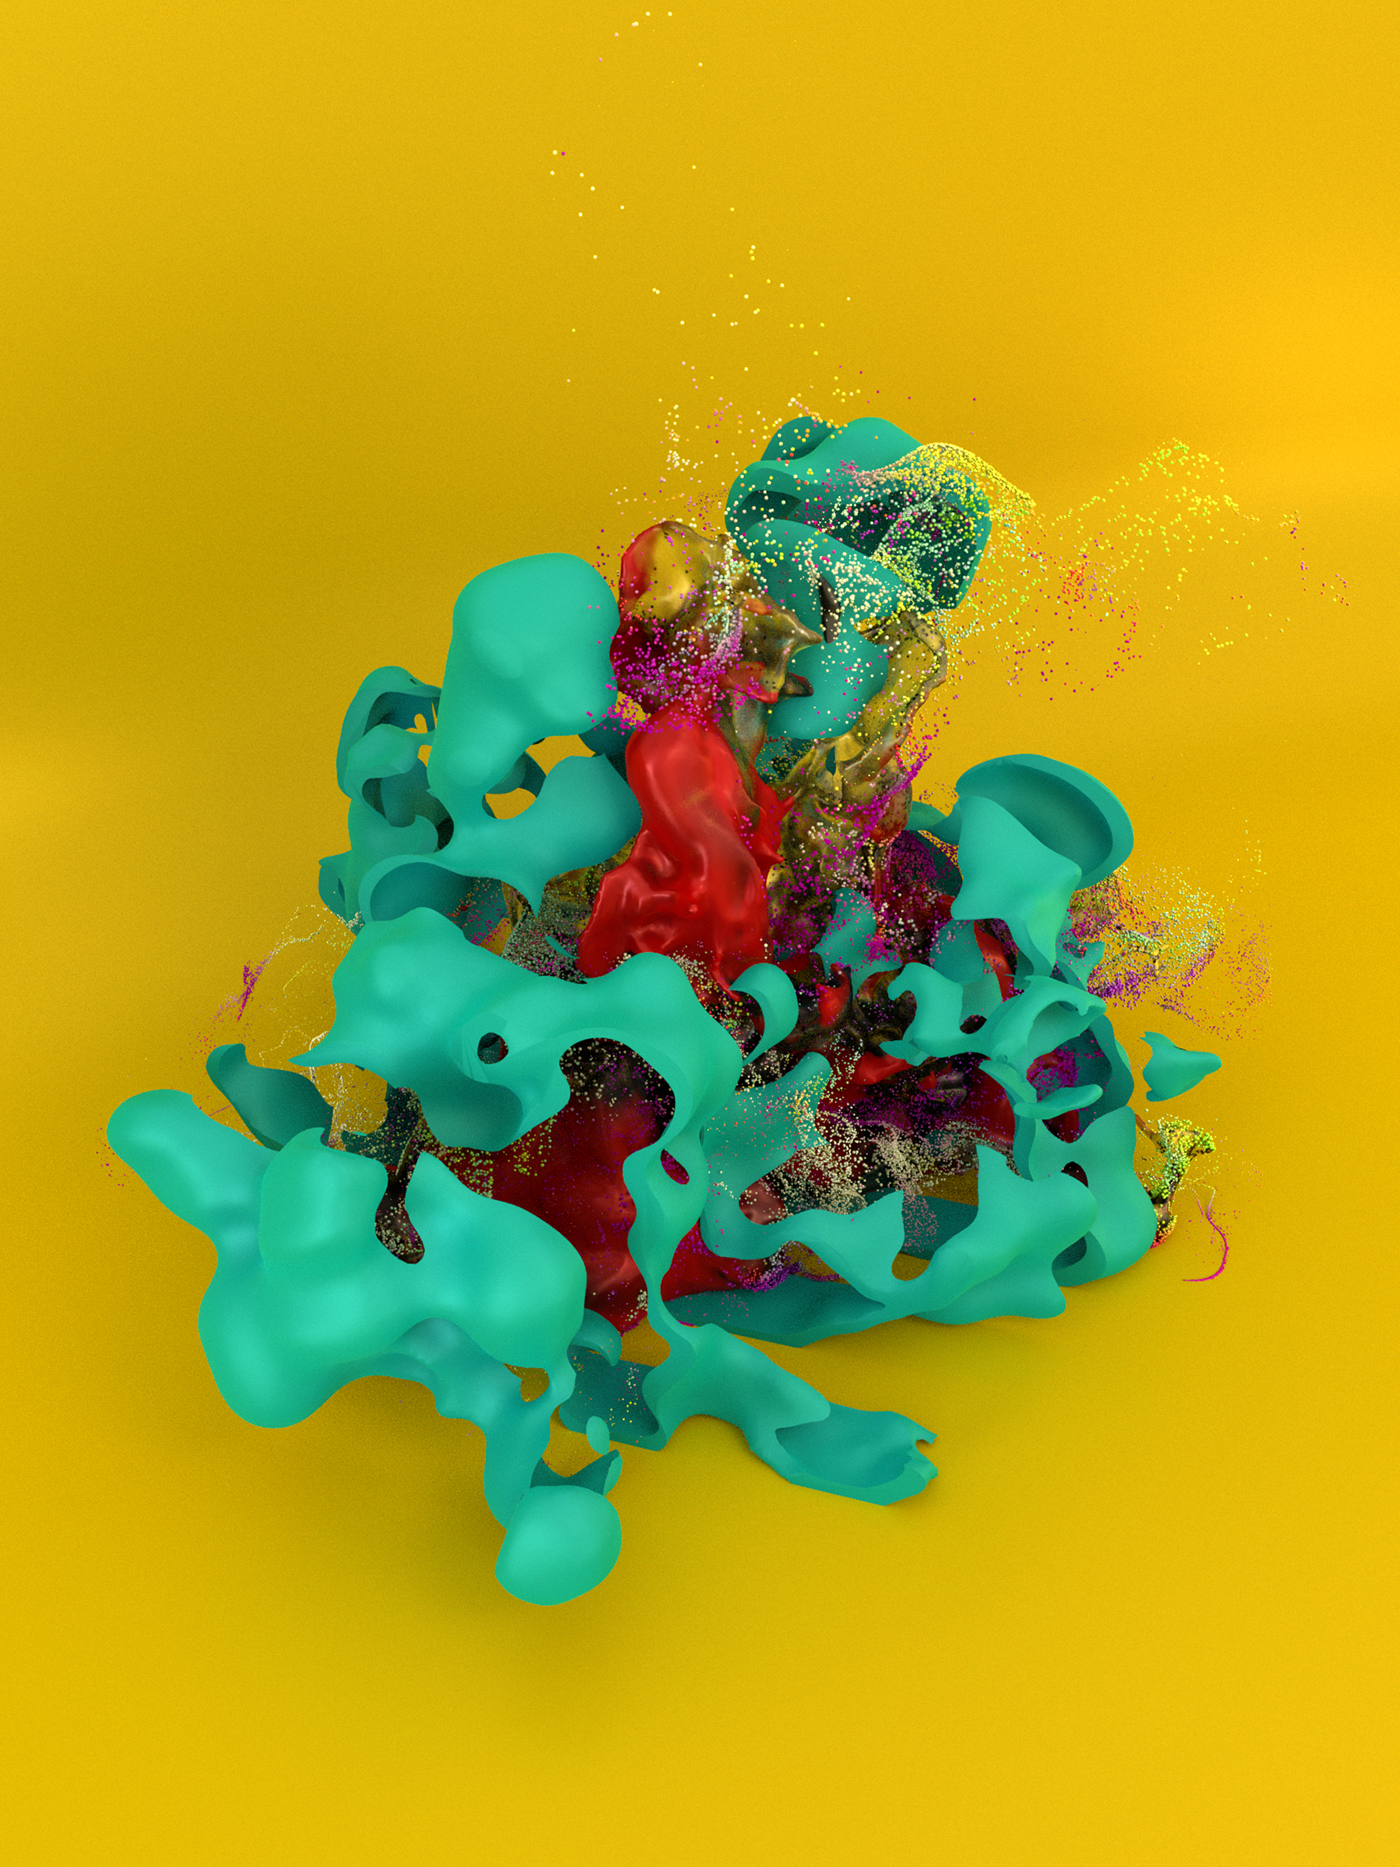 particles Pyro yellow abstract simulations fluids volumes 3D fx